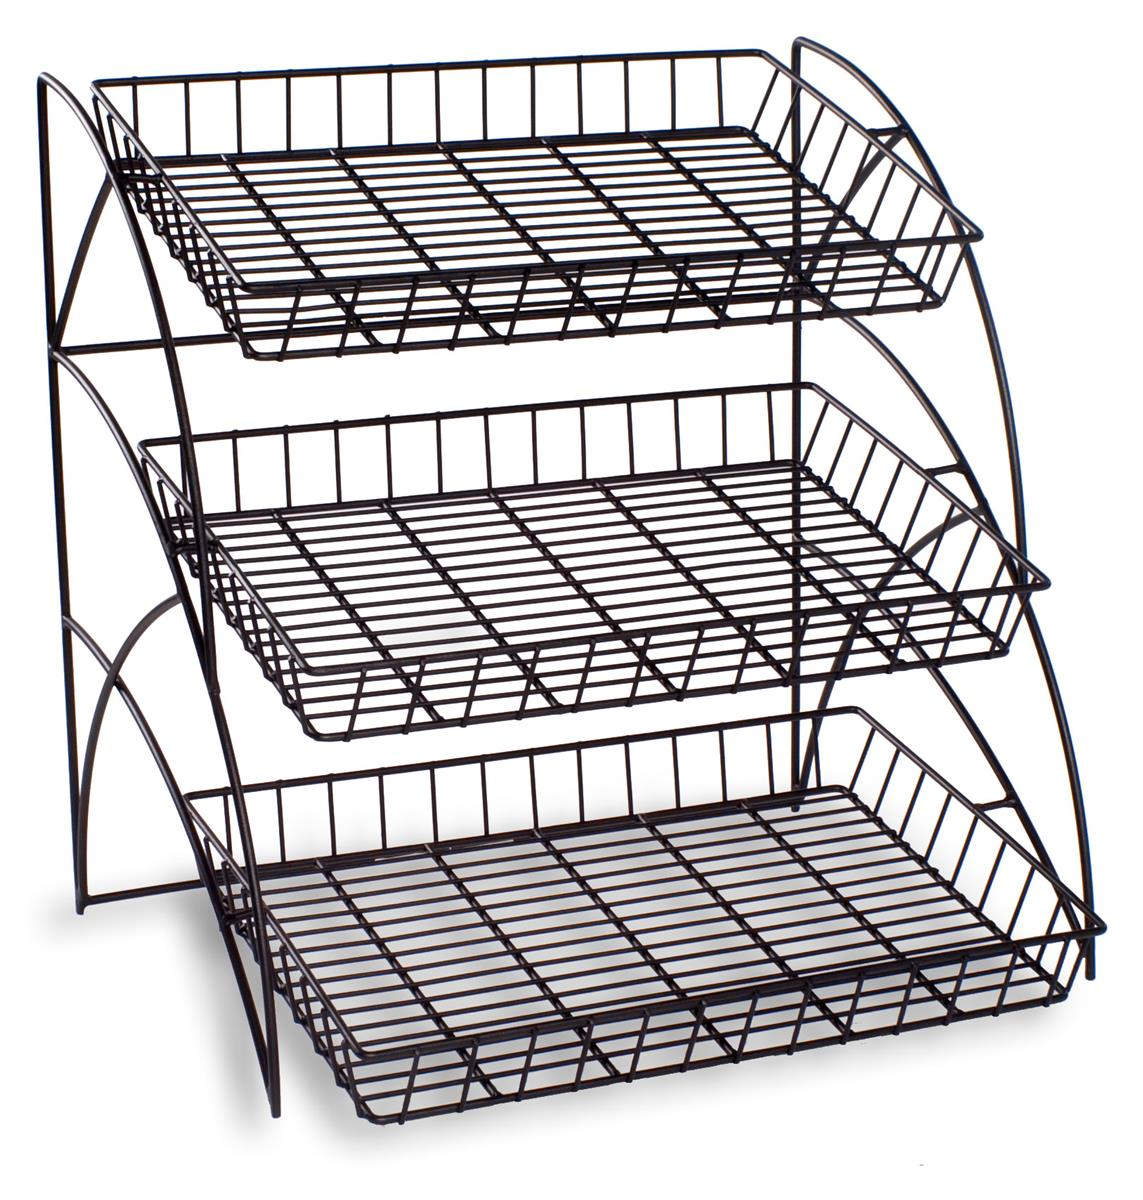 3 wire tray display rack food retail display